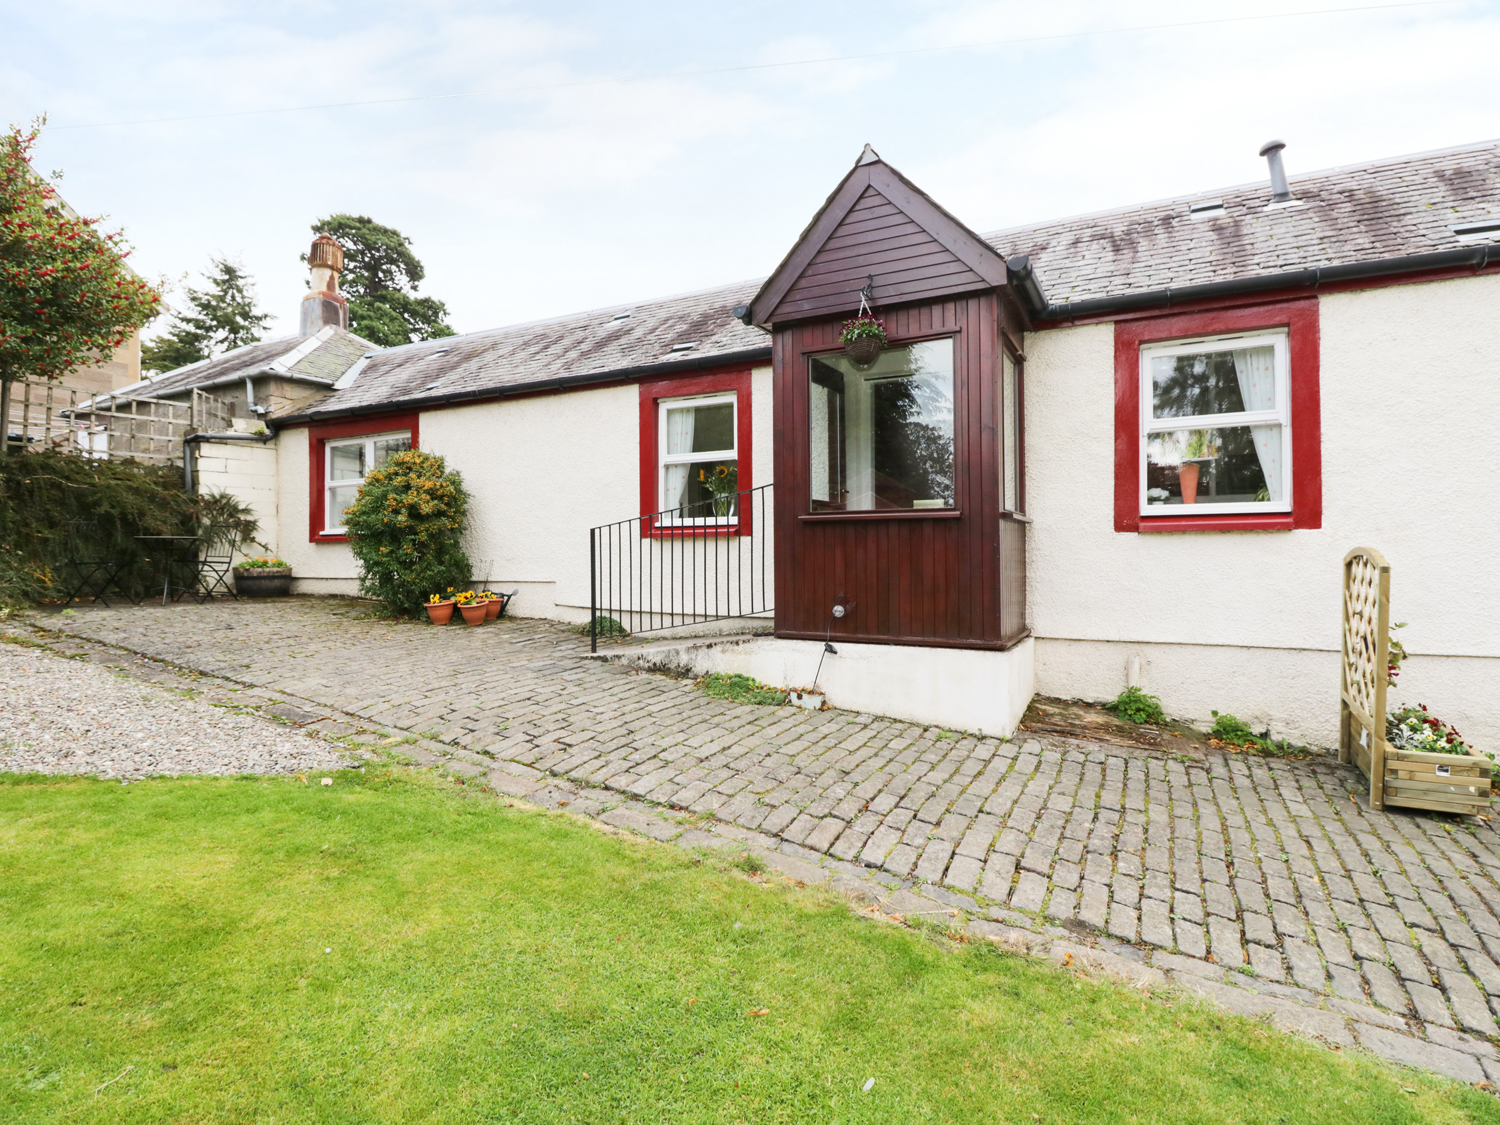 1 bedroom Cottage for rent in Perth, Scotland